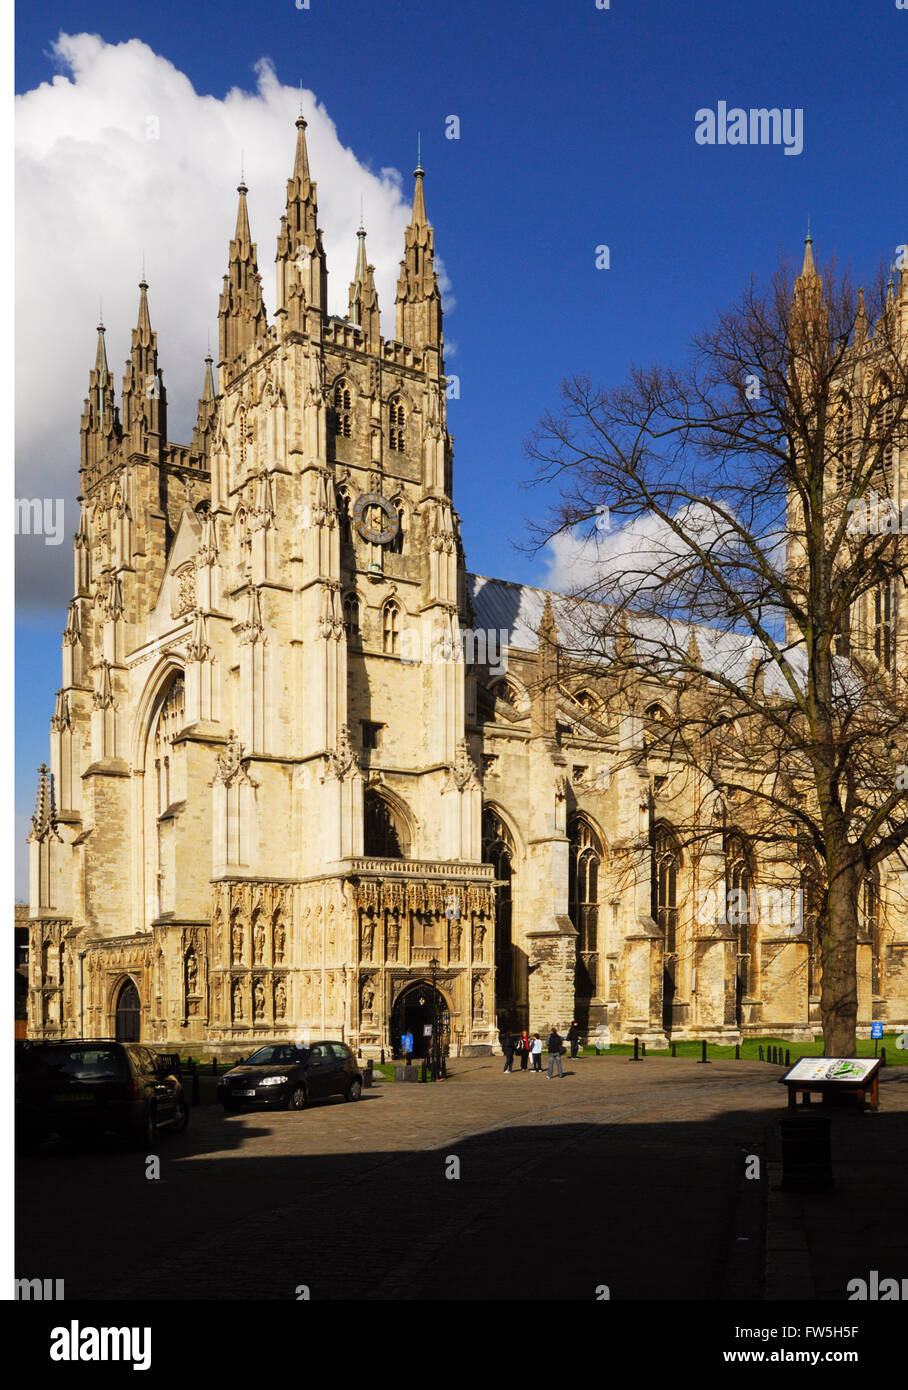 Dating-Damen-Telefonnummern